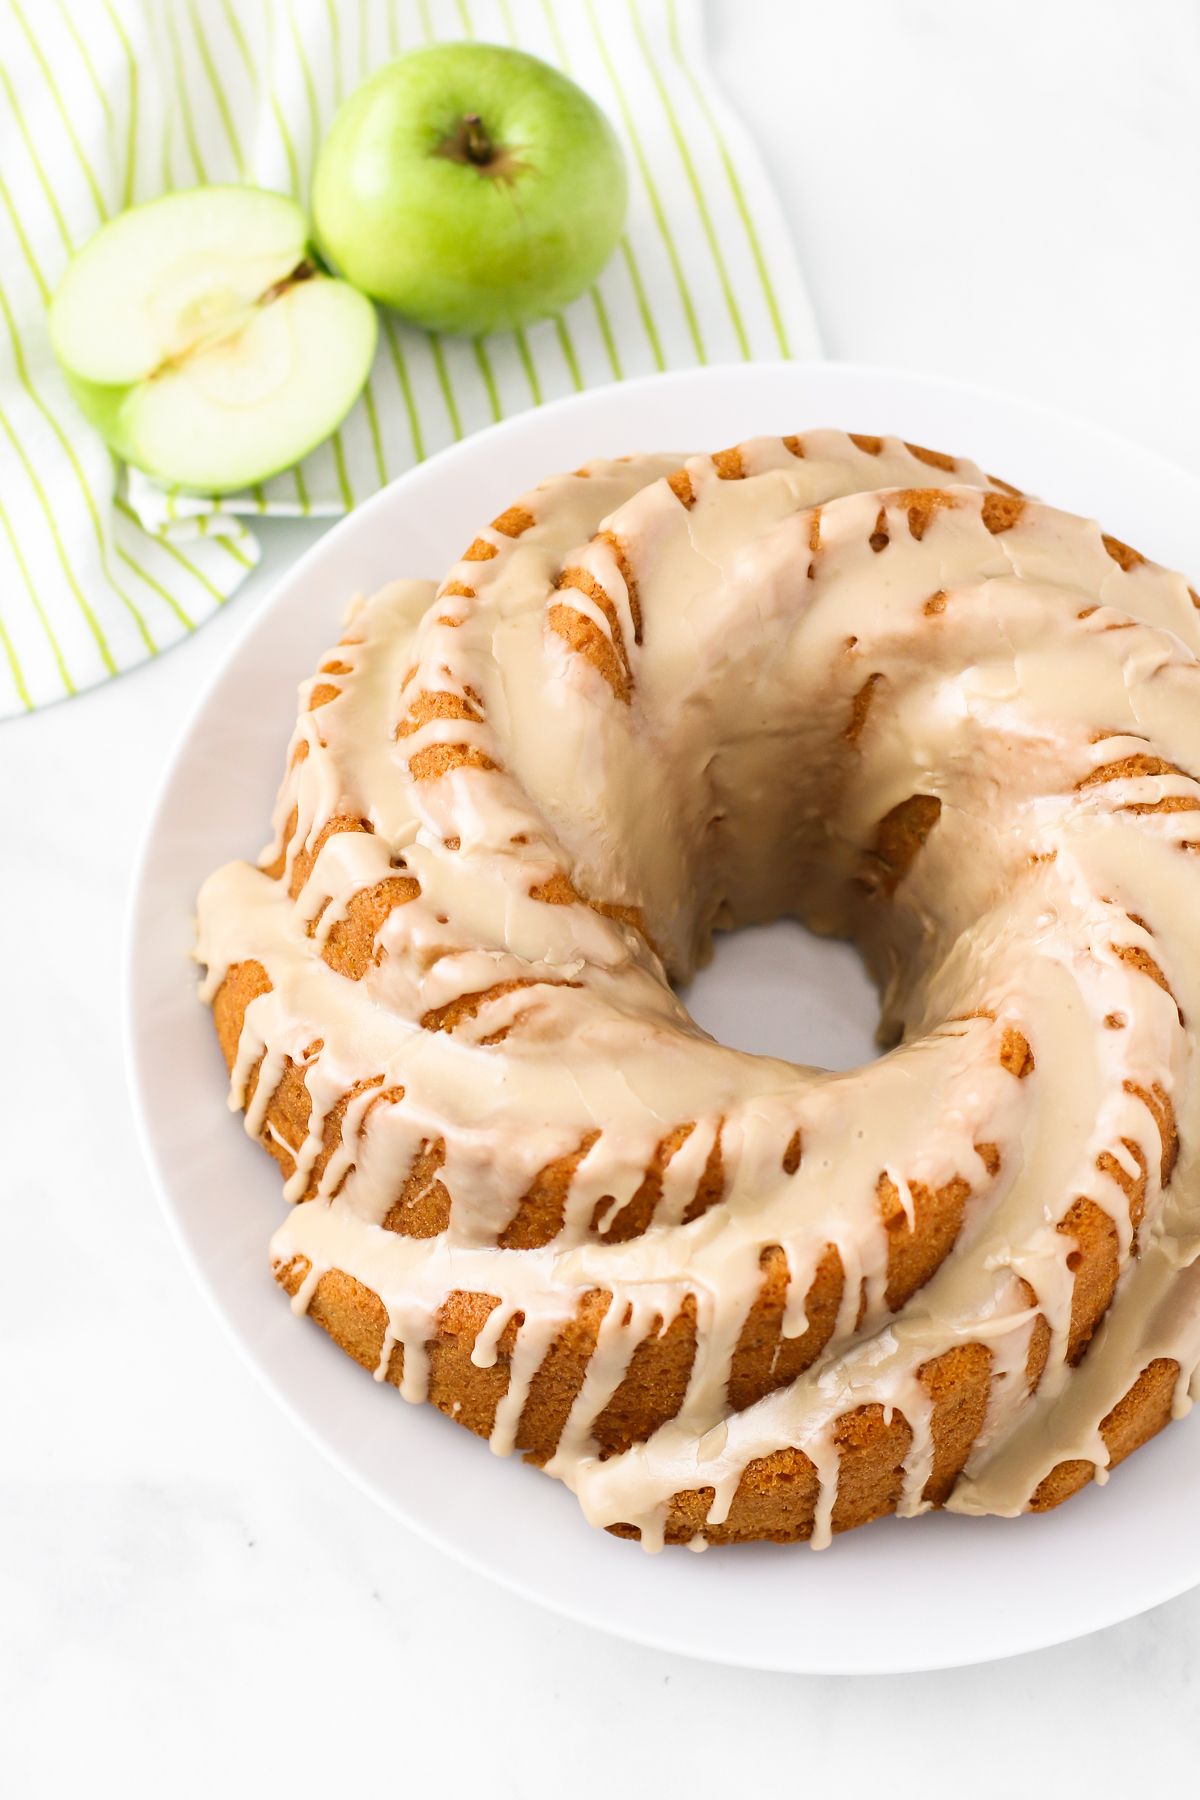 Gluten Free Vegan Caramel Apple Bundt Cake. As the decadent caramel glaze is dripping down the sides of this gluten free vegan caramel apple bundt cake, you can't help but want a slice.